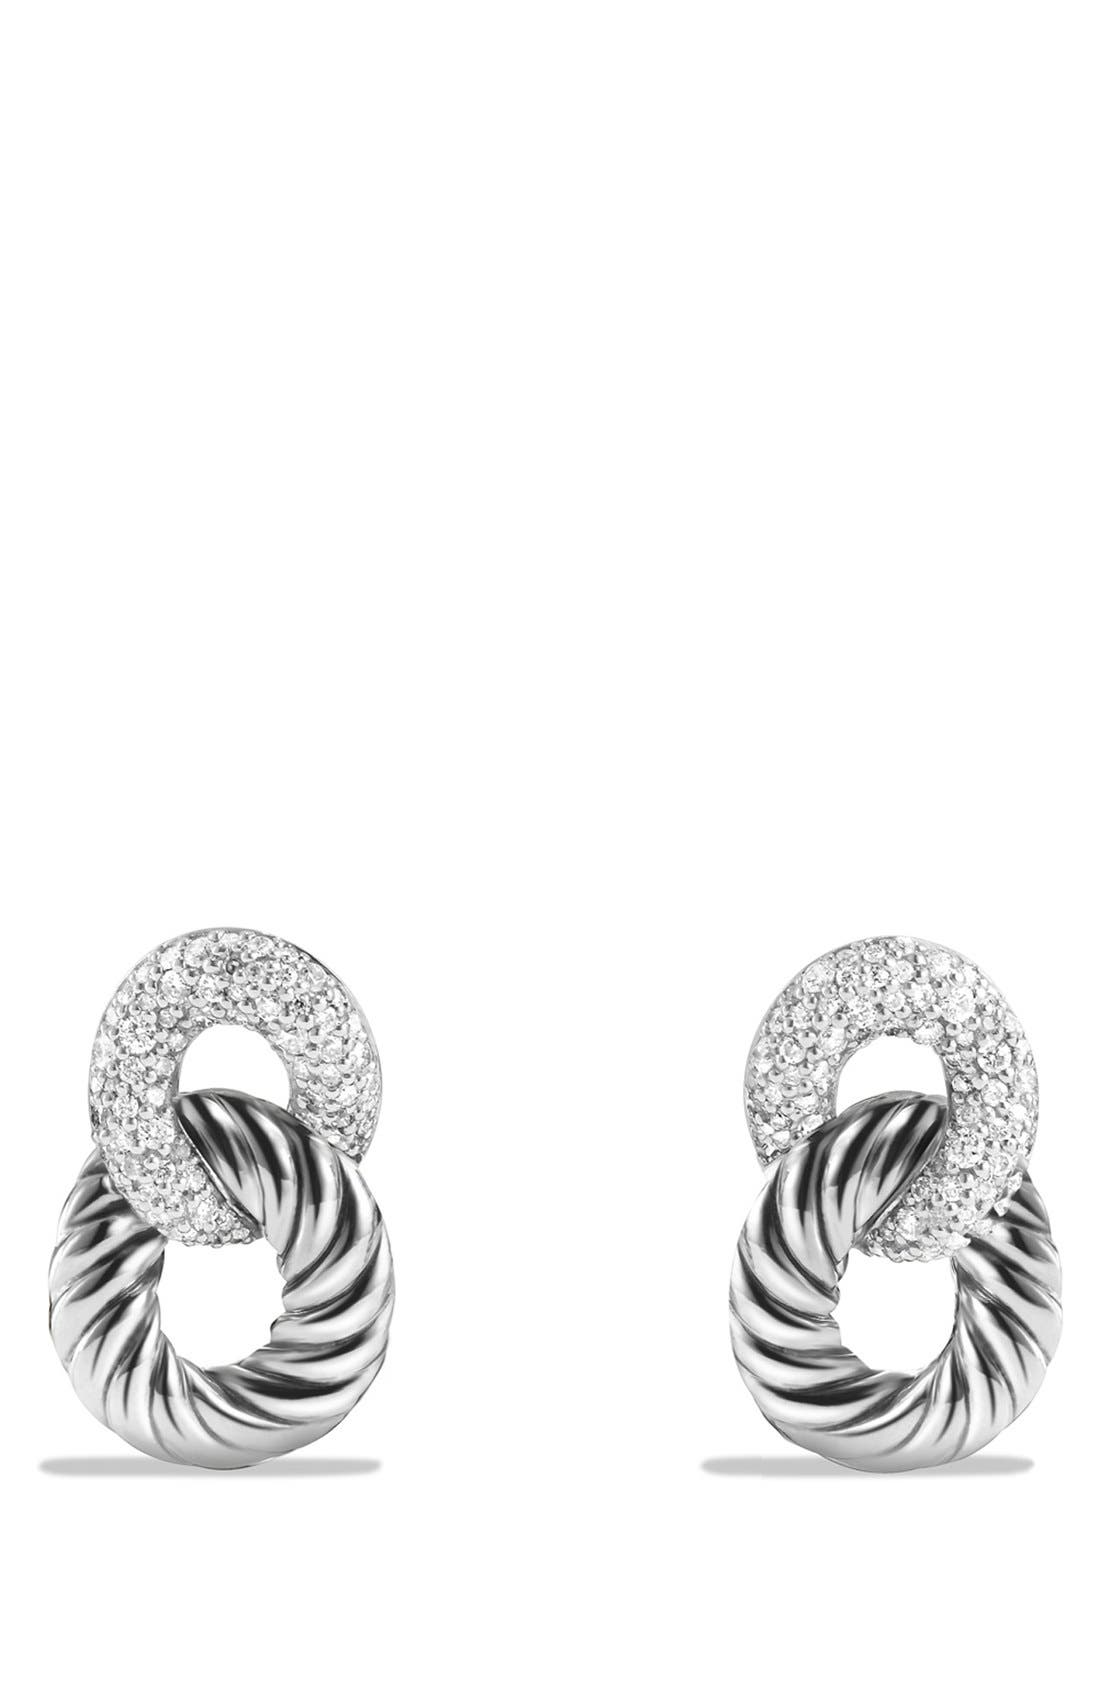 'Belmont Curb Link' Drop Earrings with Diamonds,                             Main thumbnail 1, color,                             DIAMOND